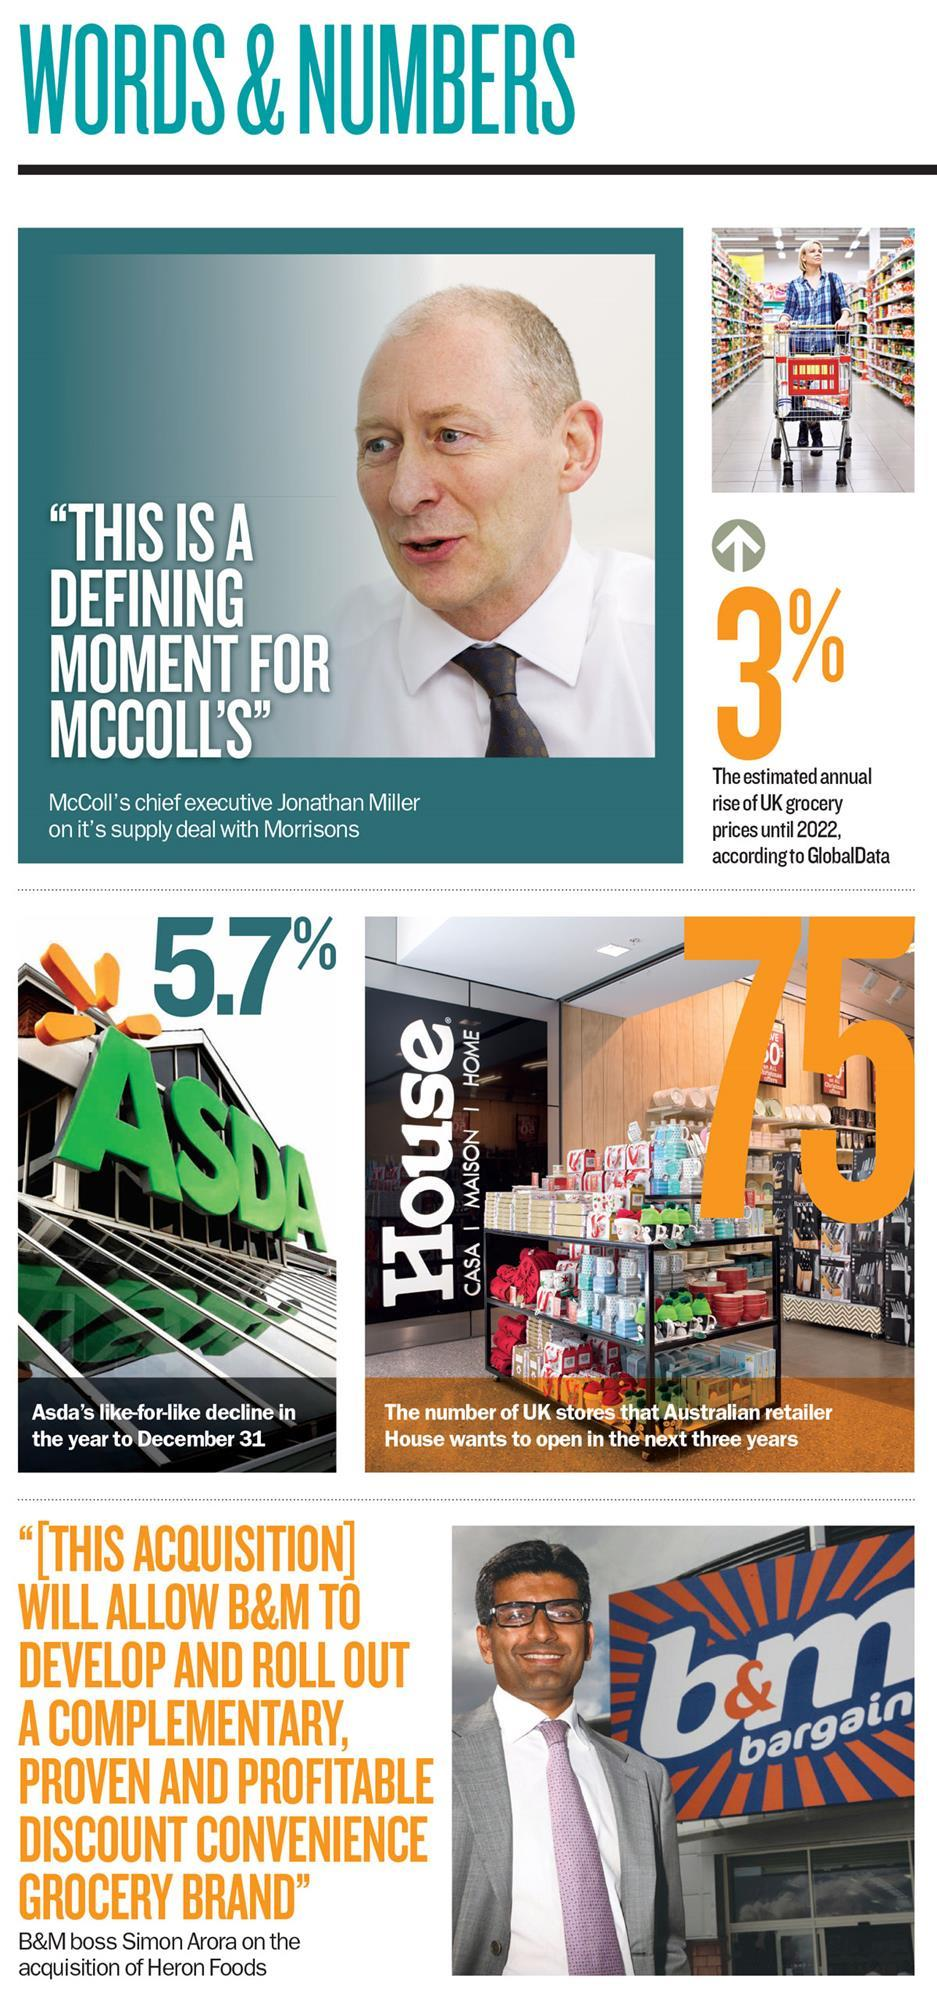 BMs discount convenience grocery plan plus Asda data Analysis